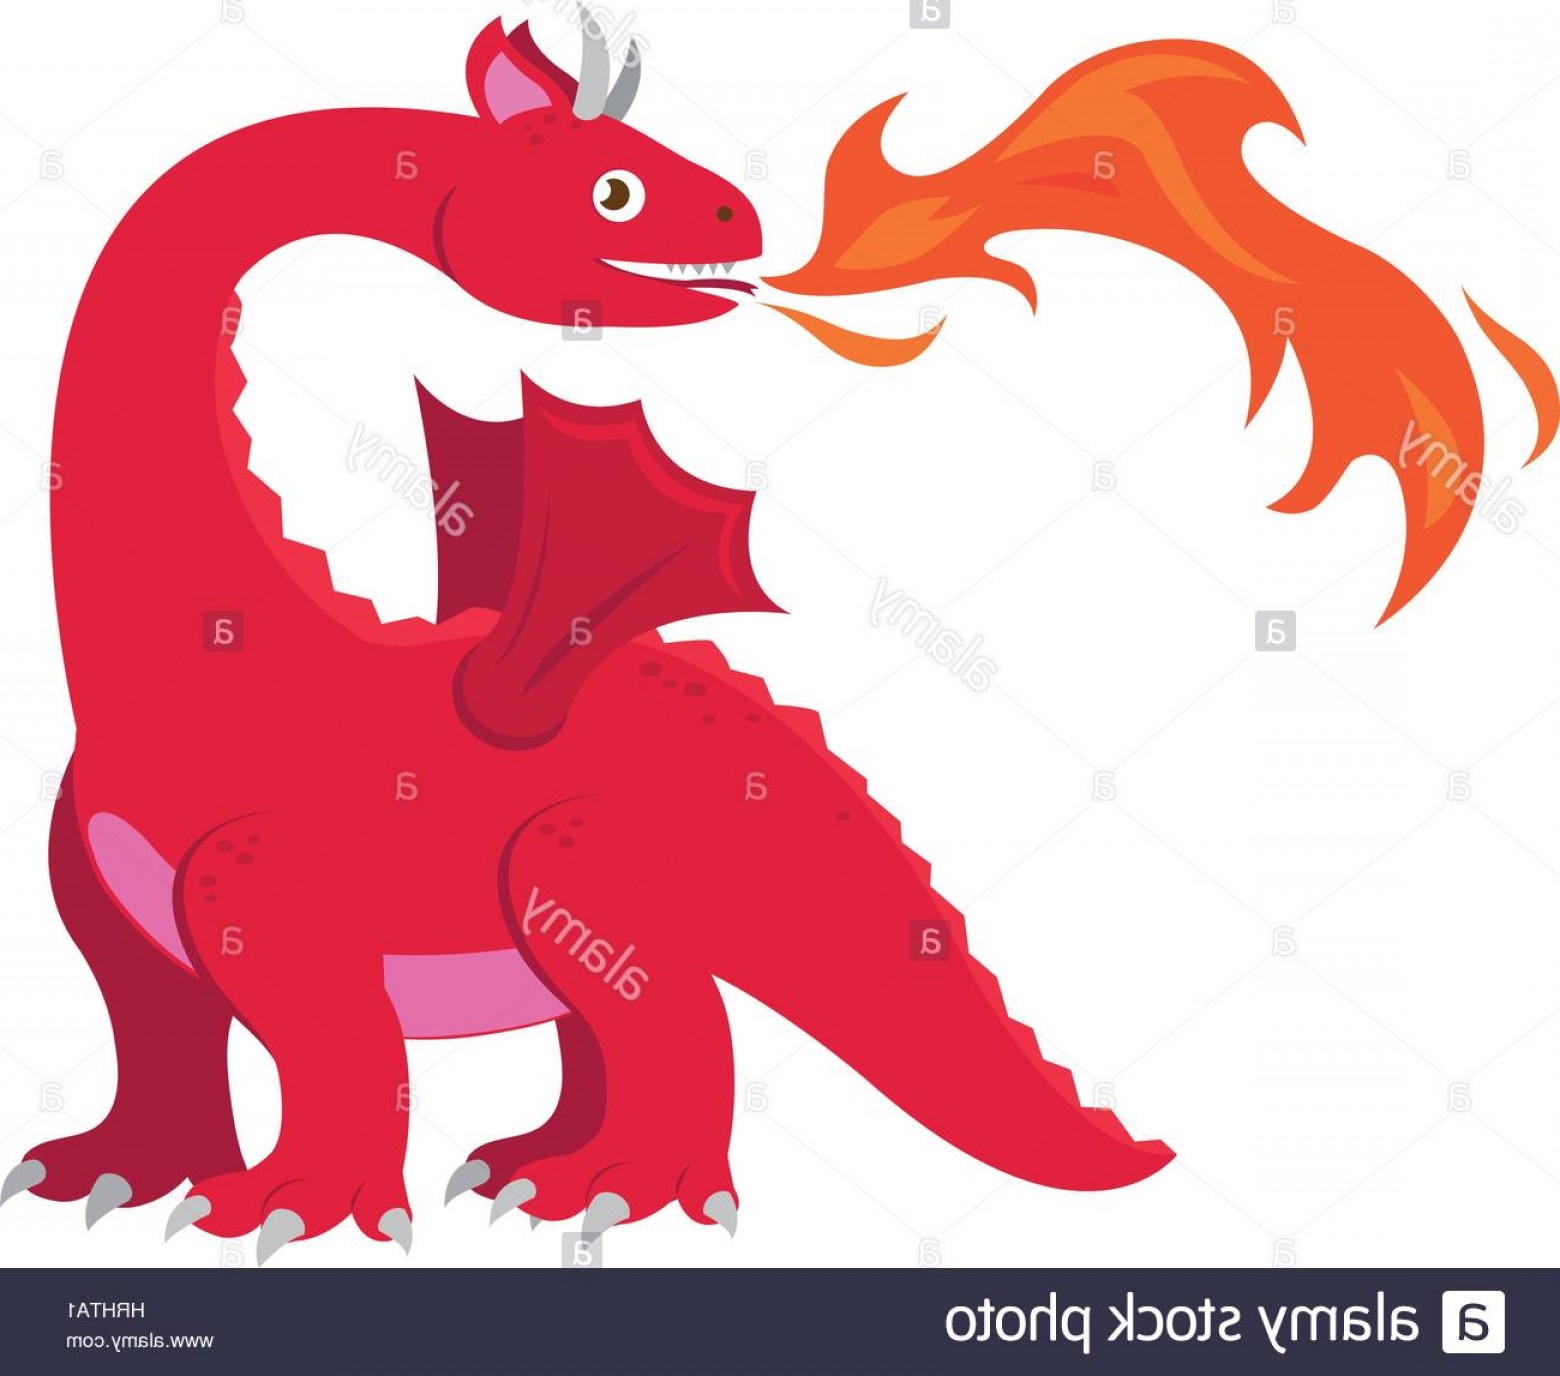 Dragon Fire Vector: Stock Photo Vector Illustration Of A Red Dragon Breathing Fire